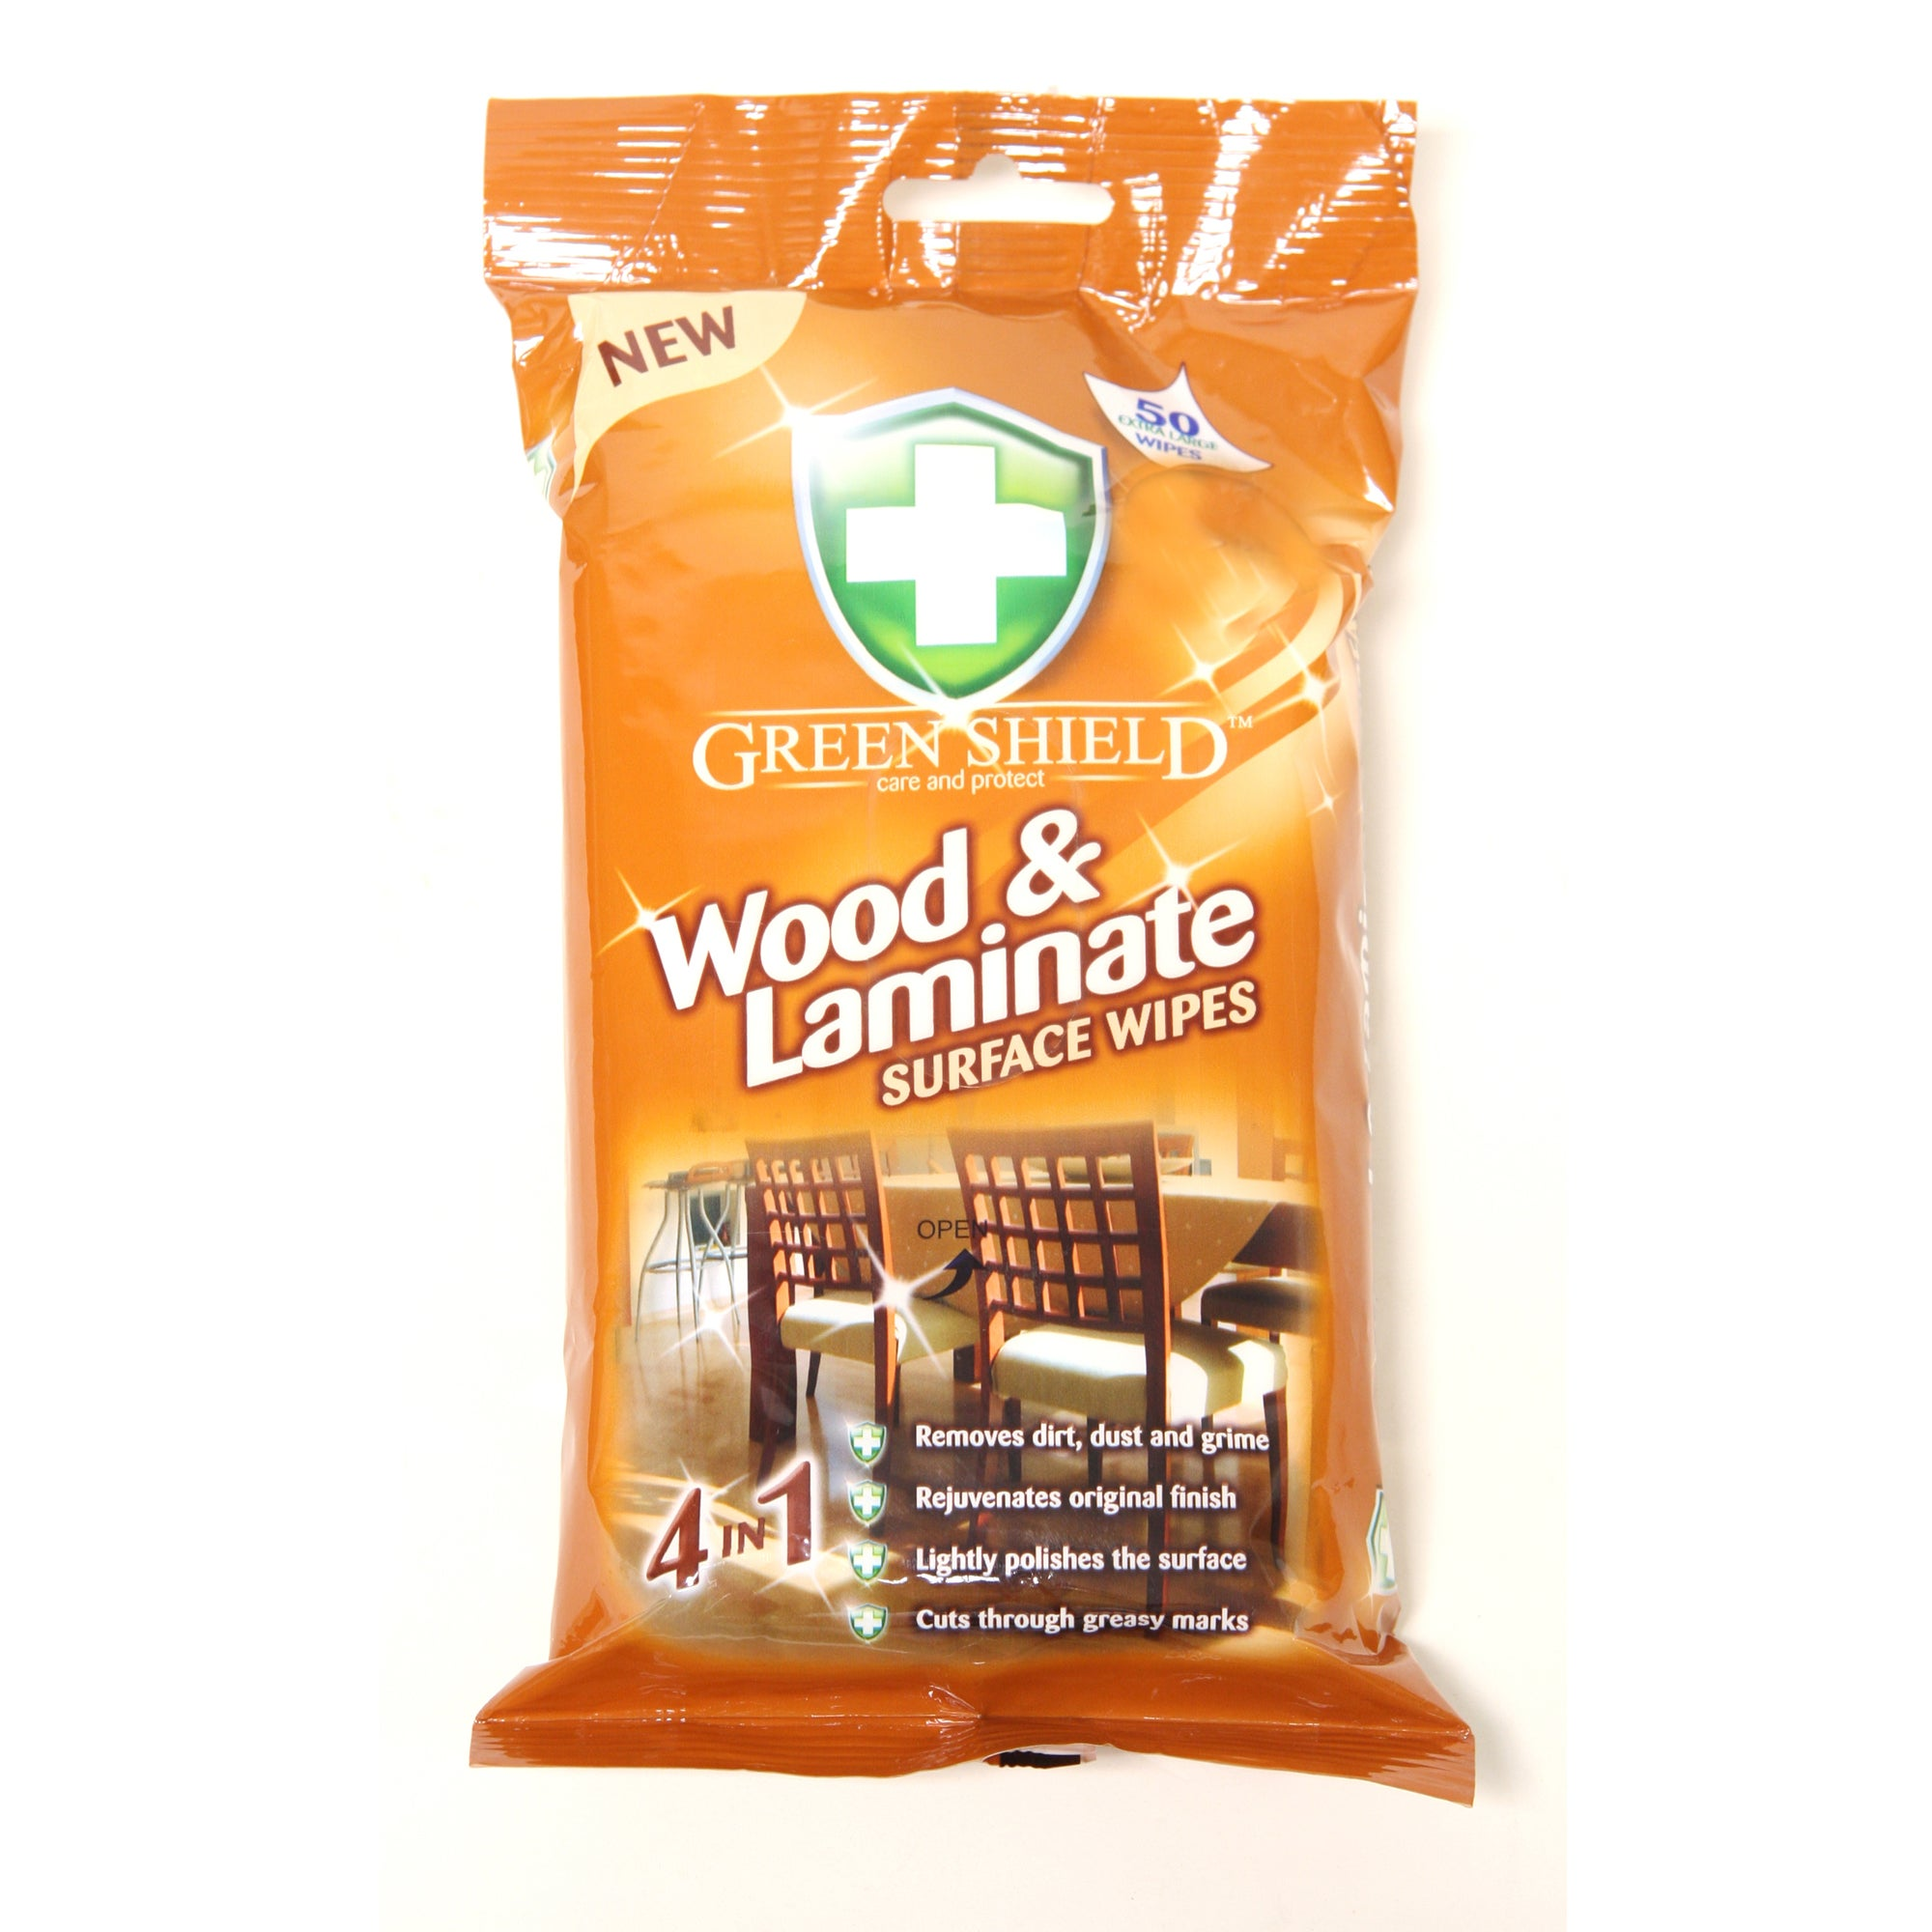 Wood and Laminate Surface Wipes